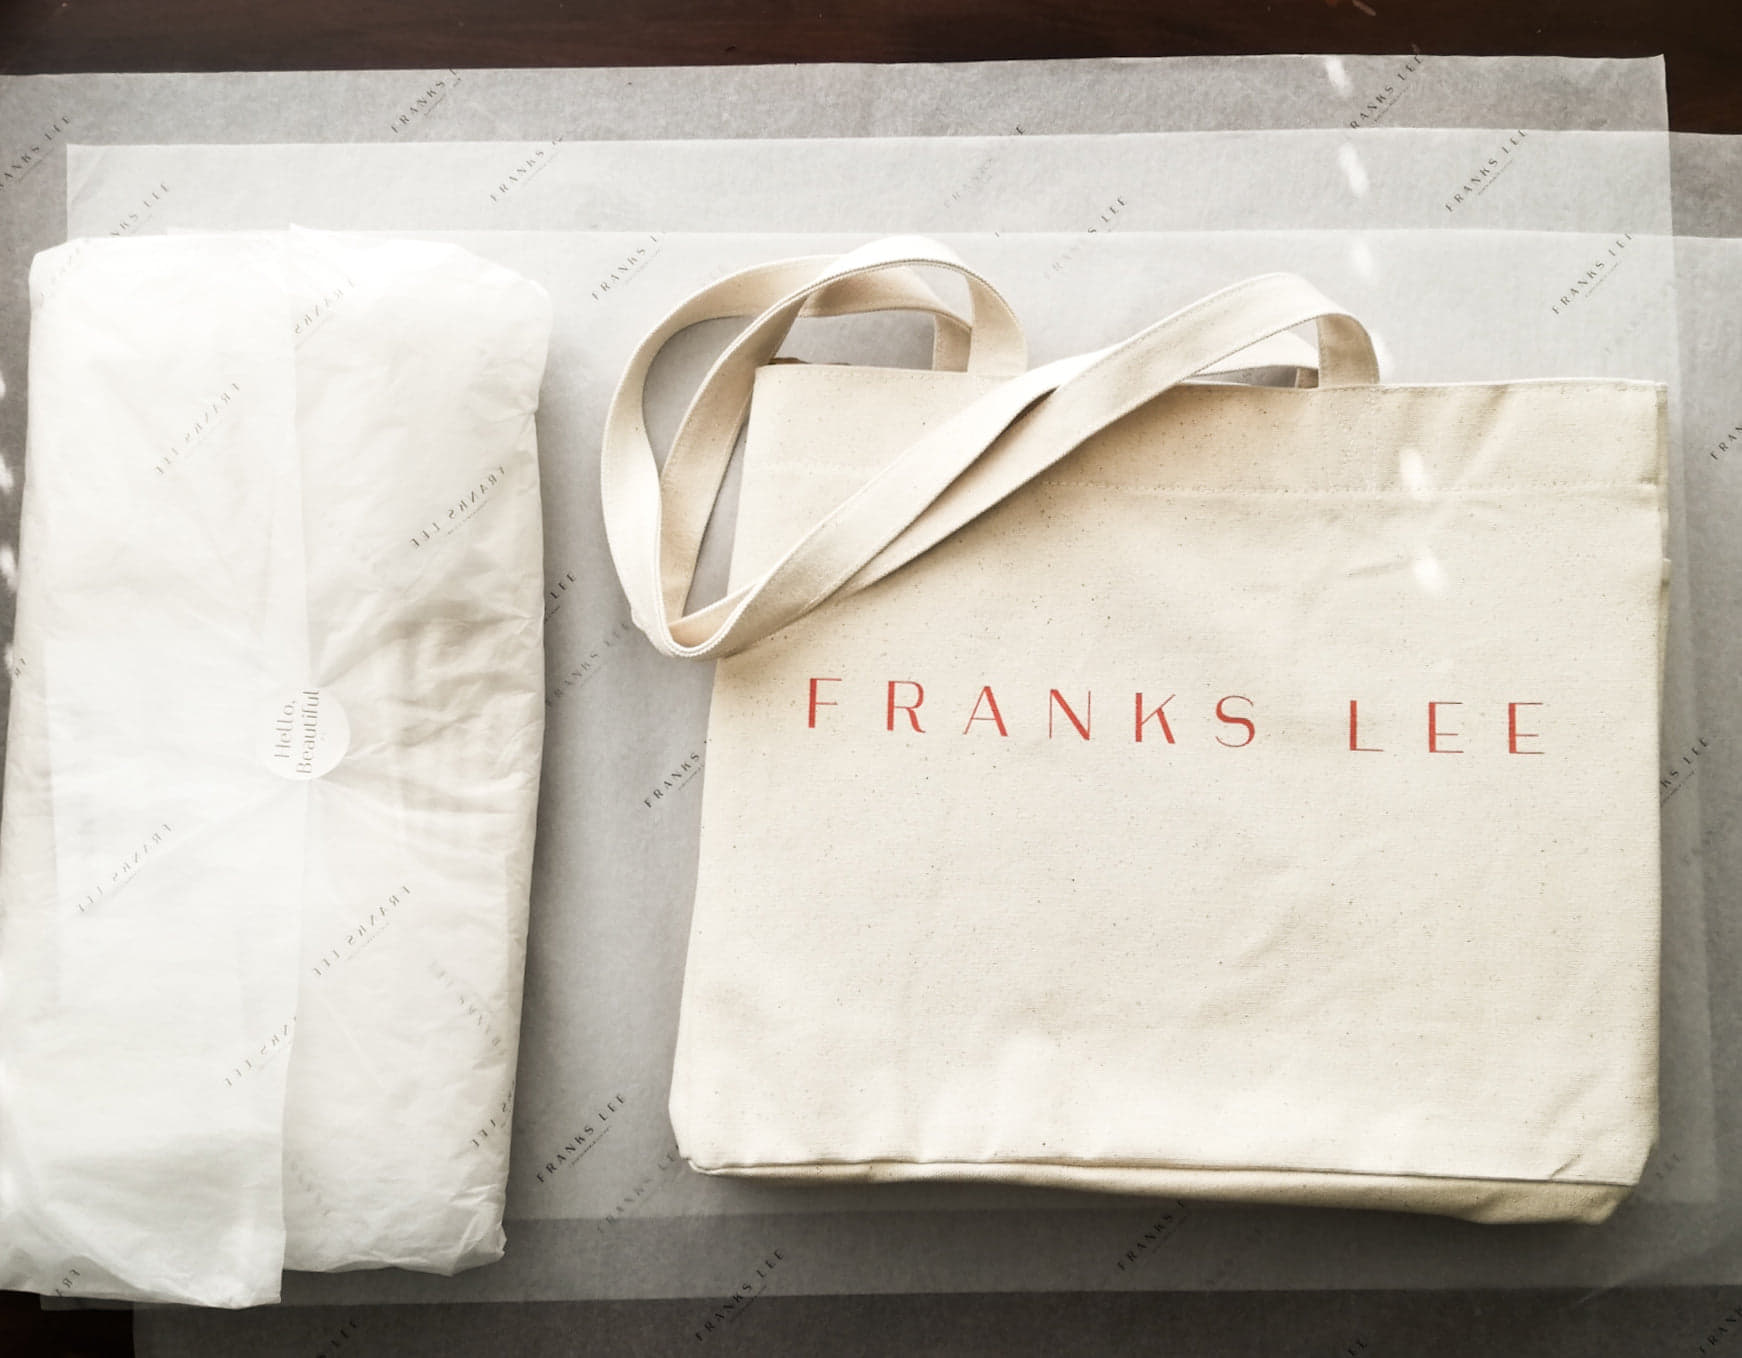 Franks Lee: Lowering Our Impact With Compostable Mailers